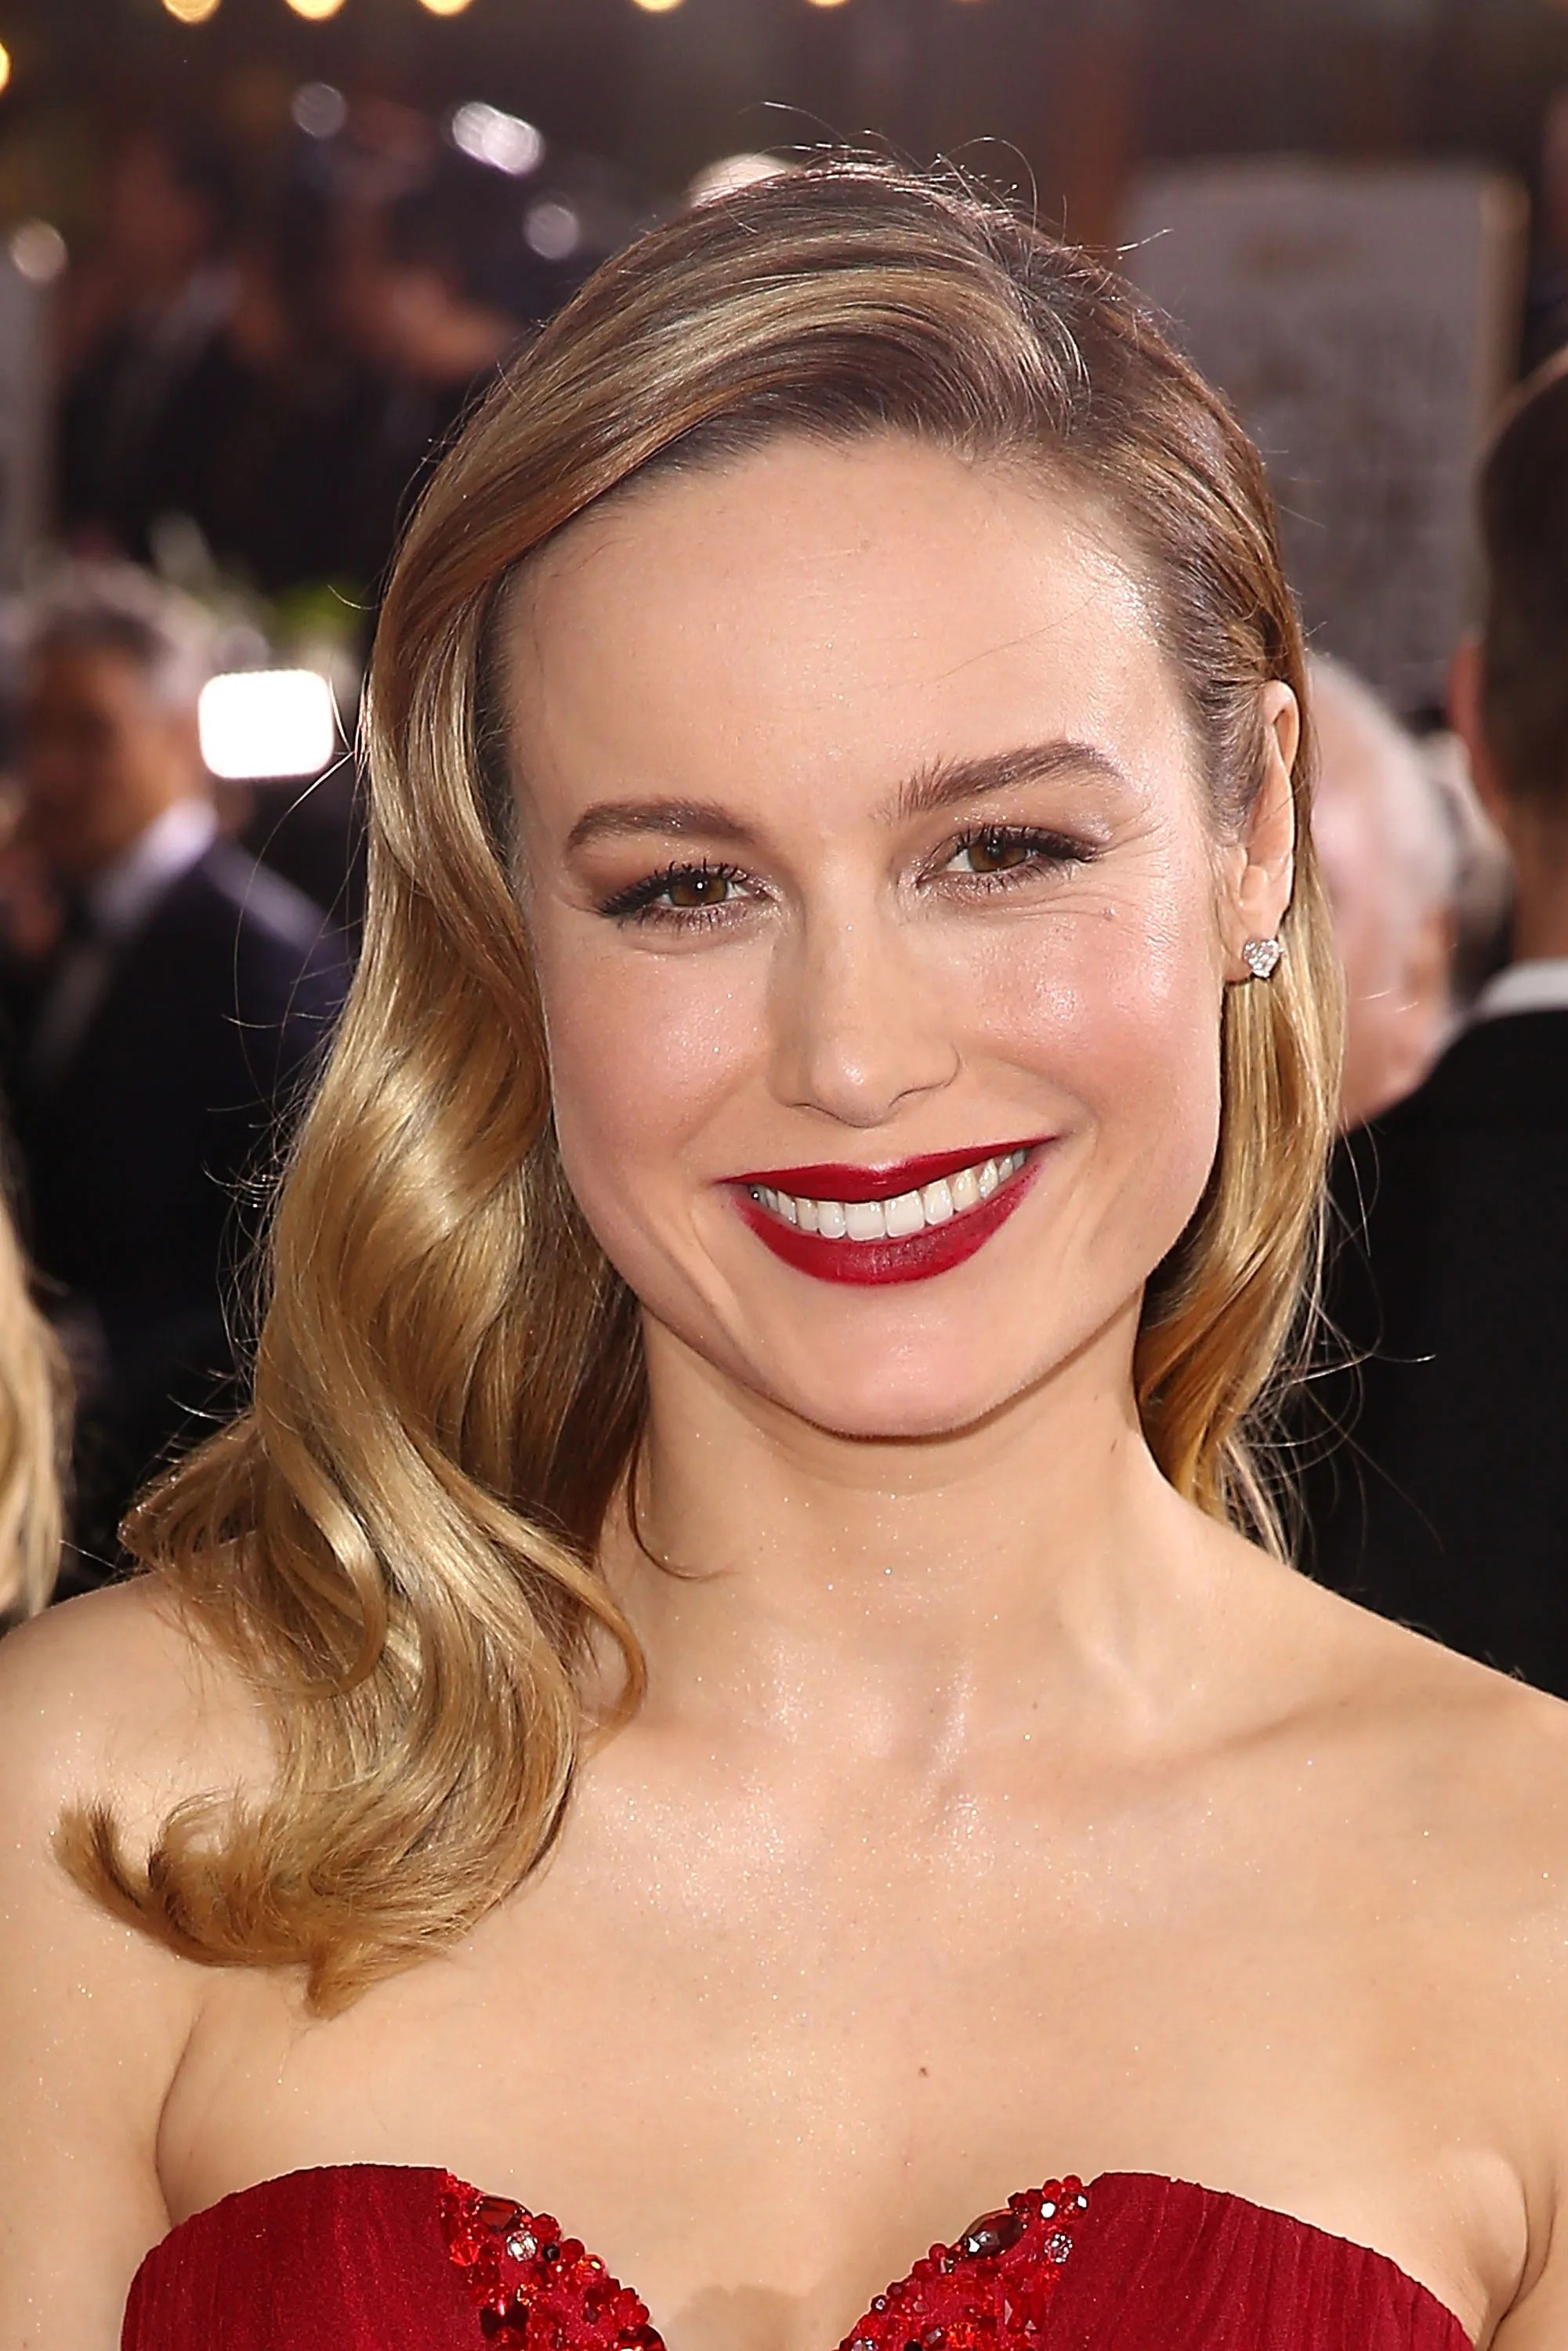 Red Makeup Box Brie Larson Hasn't Washed Her Hair Since The Golden Globes